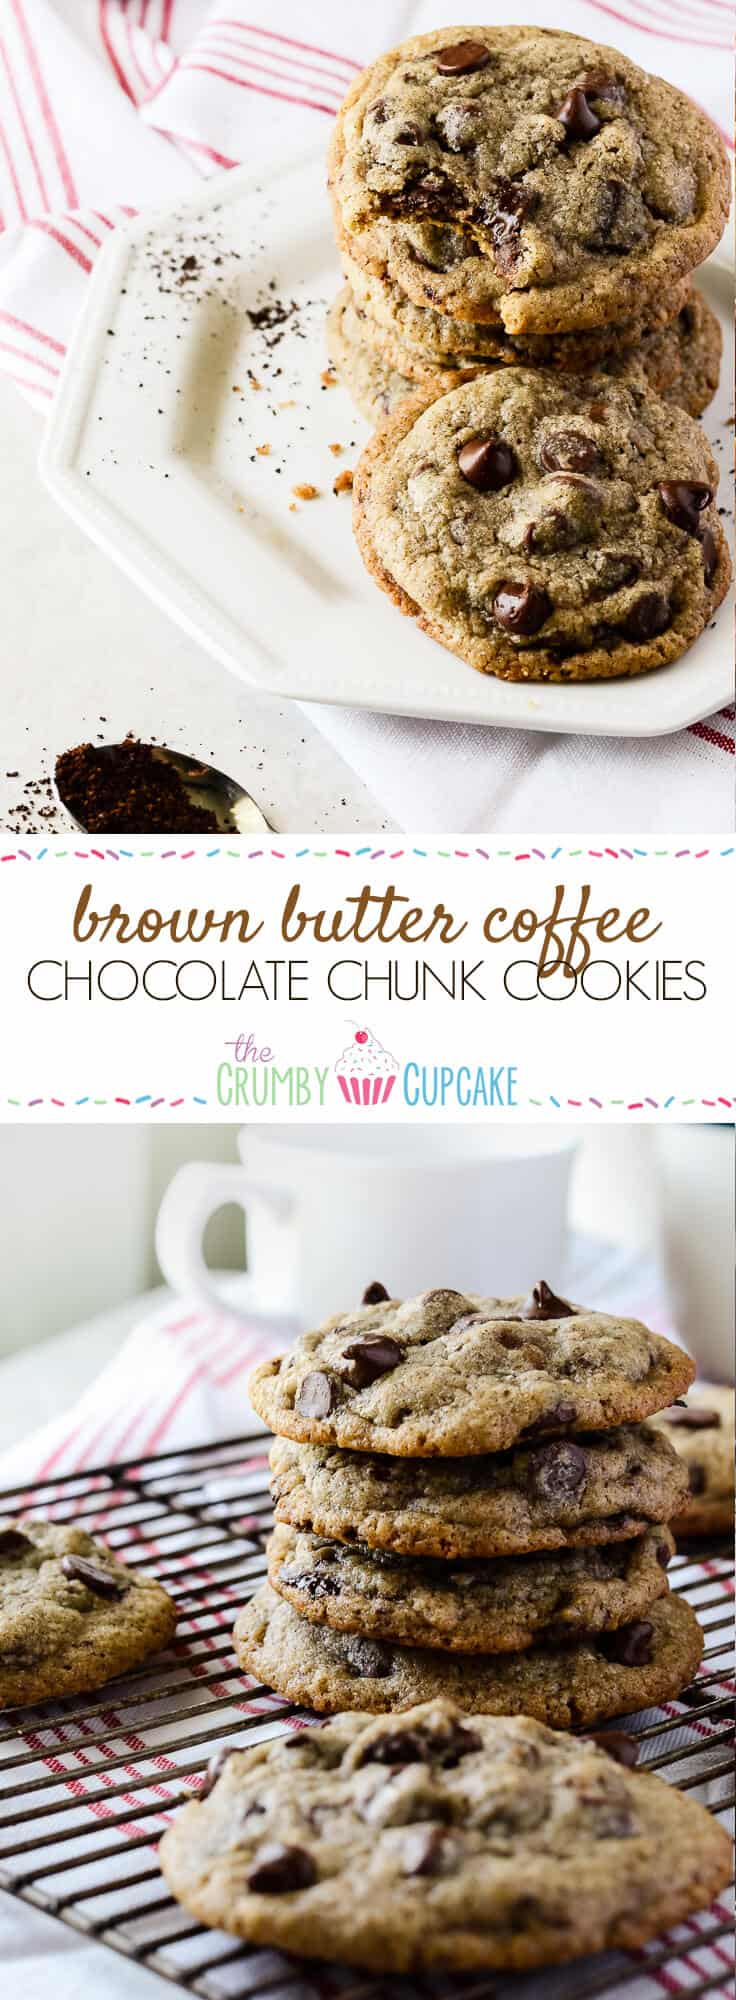 Fall isn't just pumpkins, maple, and apples. It's all things warm and cozy, and a batch of theseBrown Butter Coffee Chocolate Chunk Cookies is just what you need to jumpstart your heart right into the cooler weather!